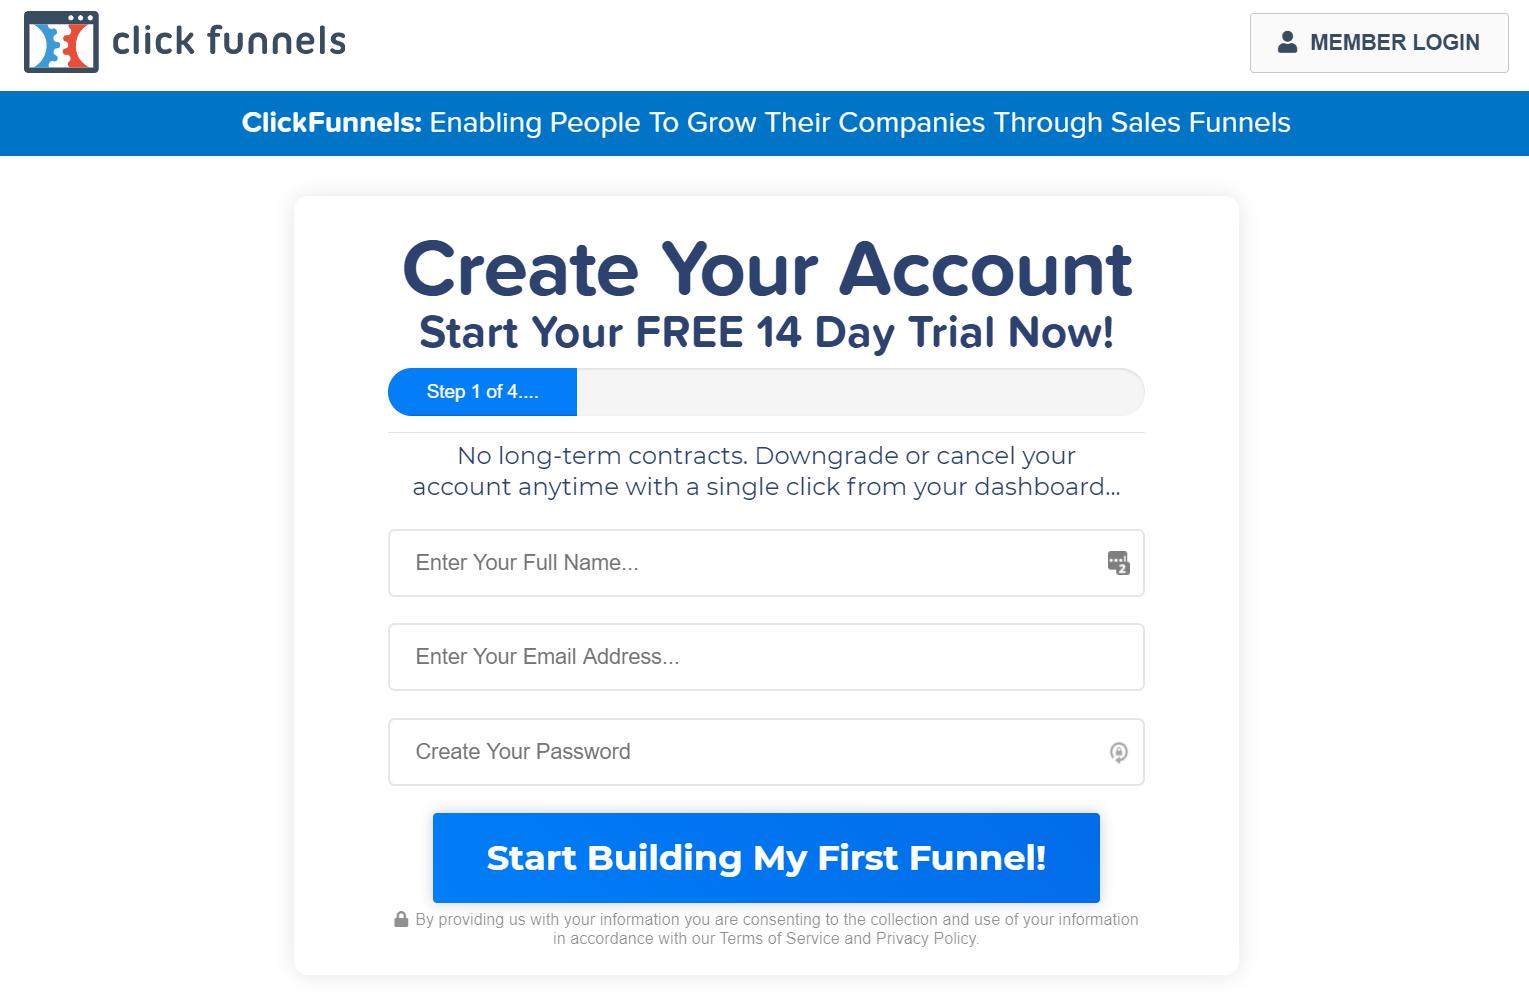 clickfunnels 14 day trial